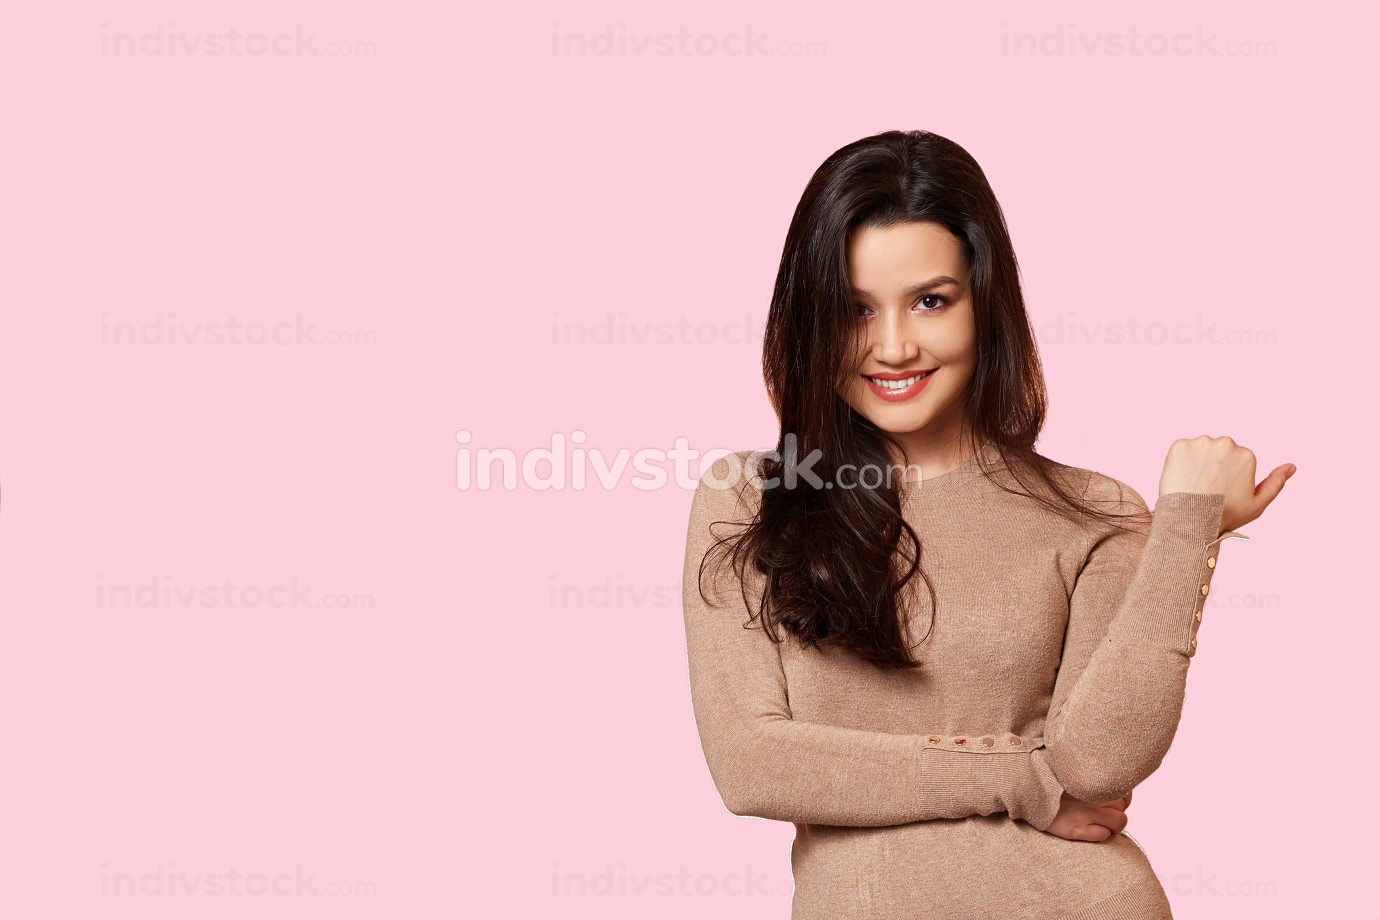 a young beautiful brunette in a light brown sweater is smiling. on a pink isolated background